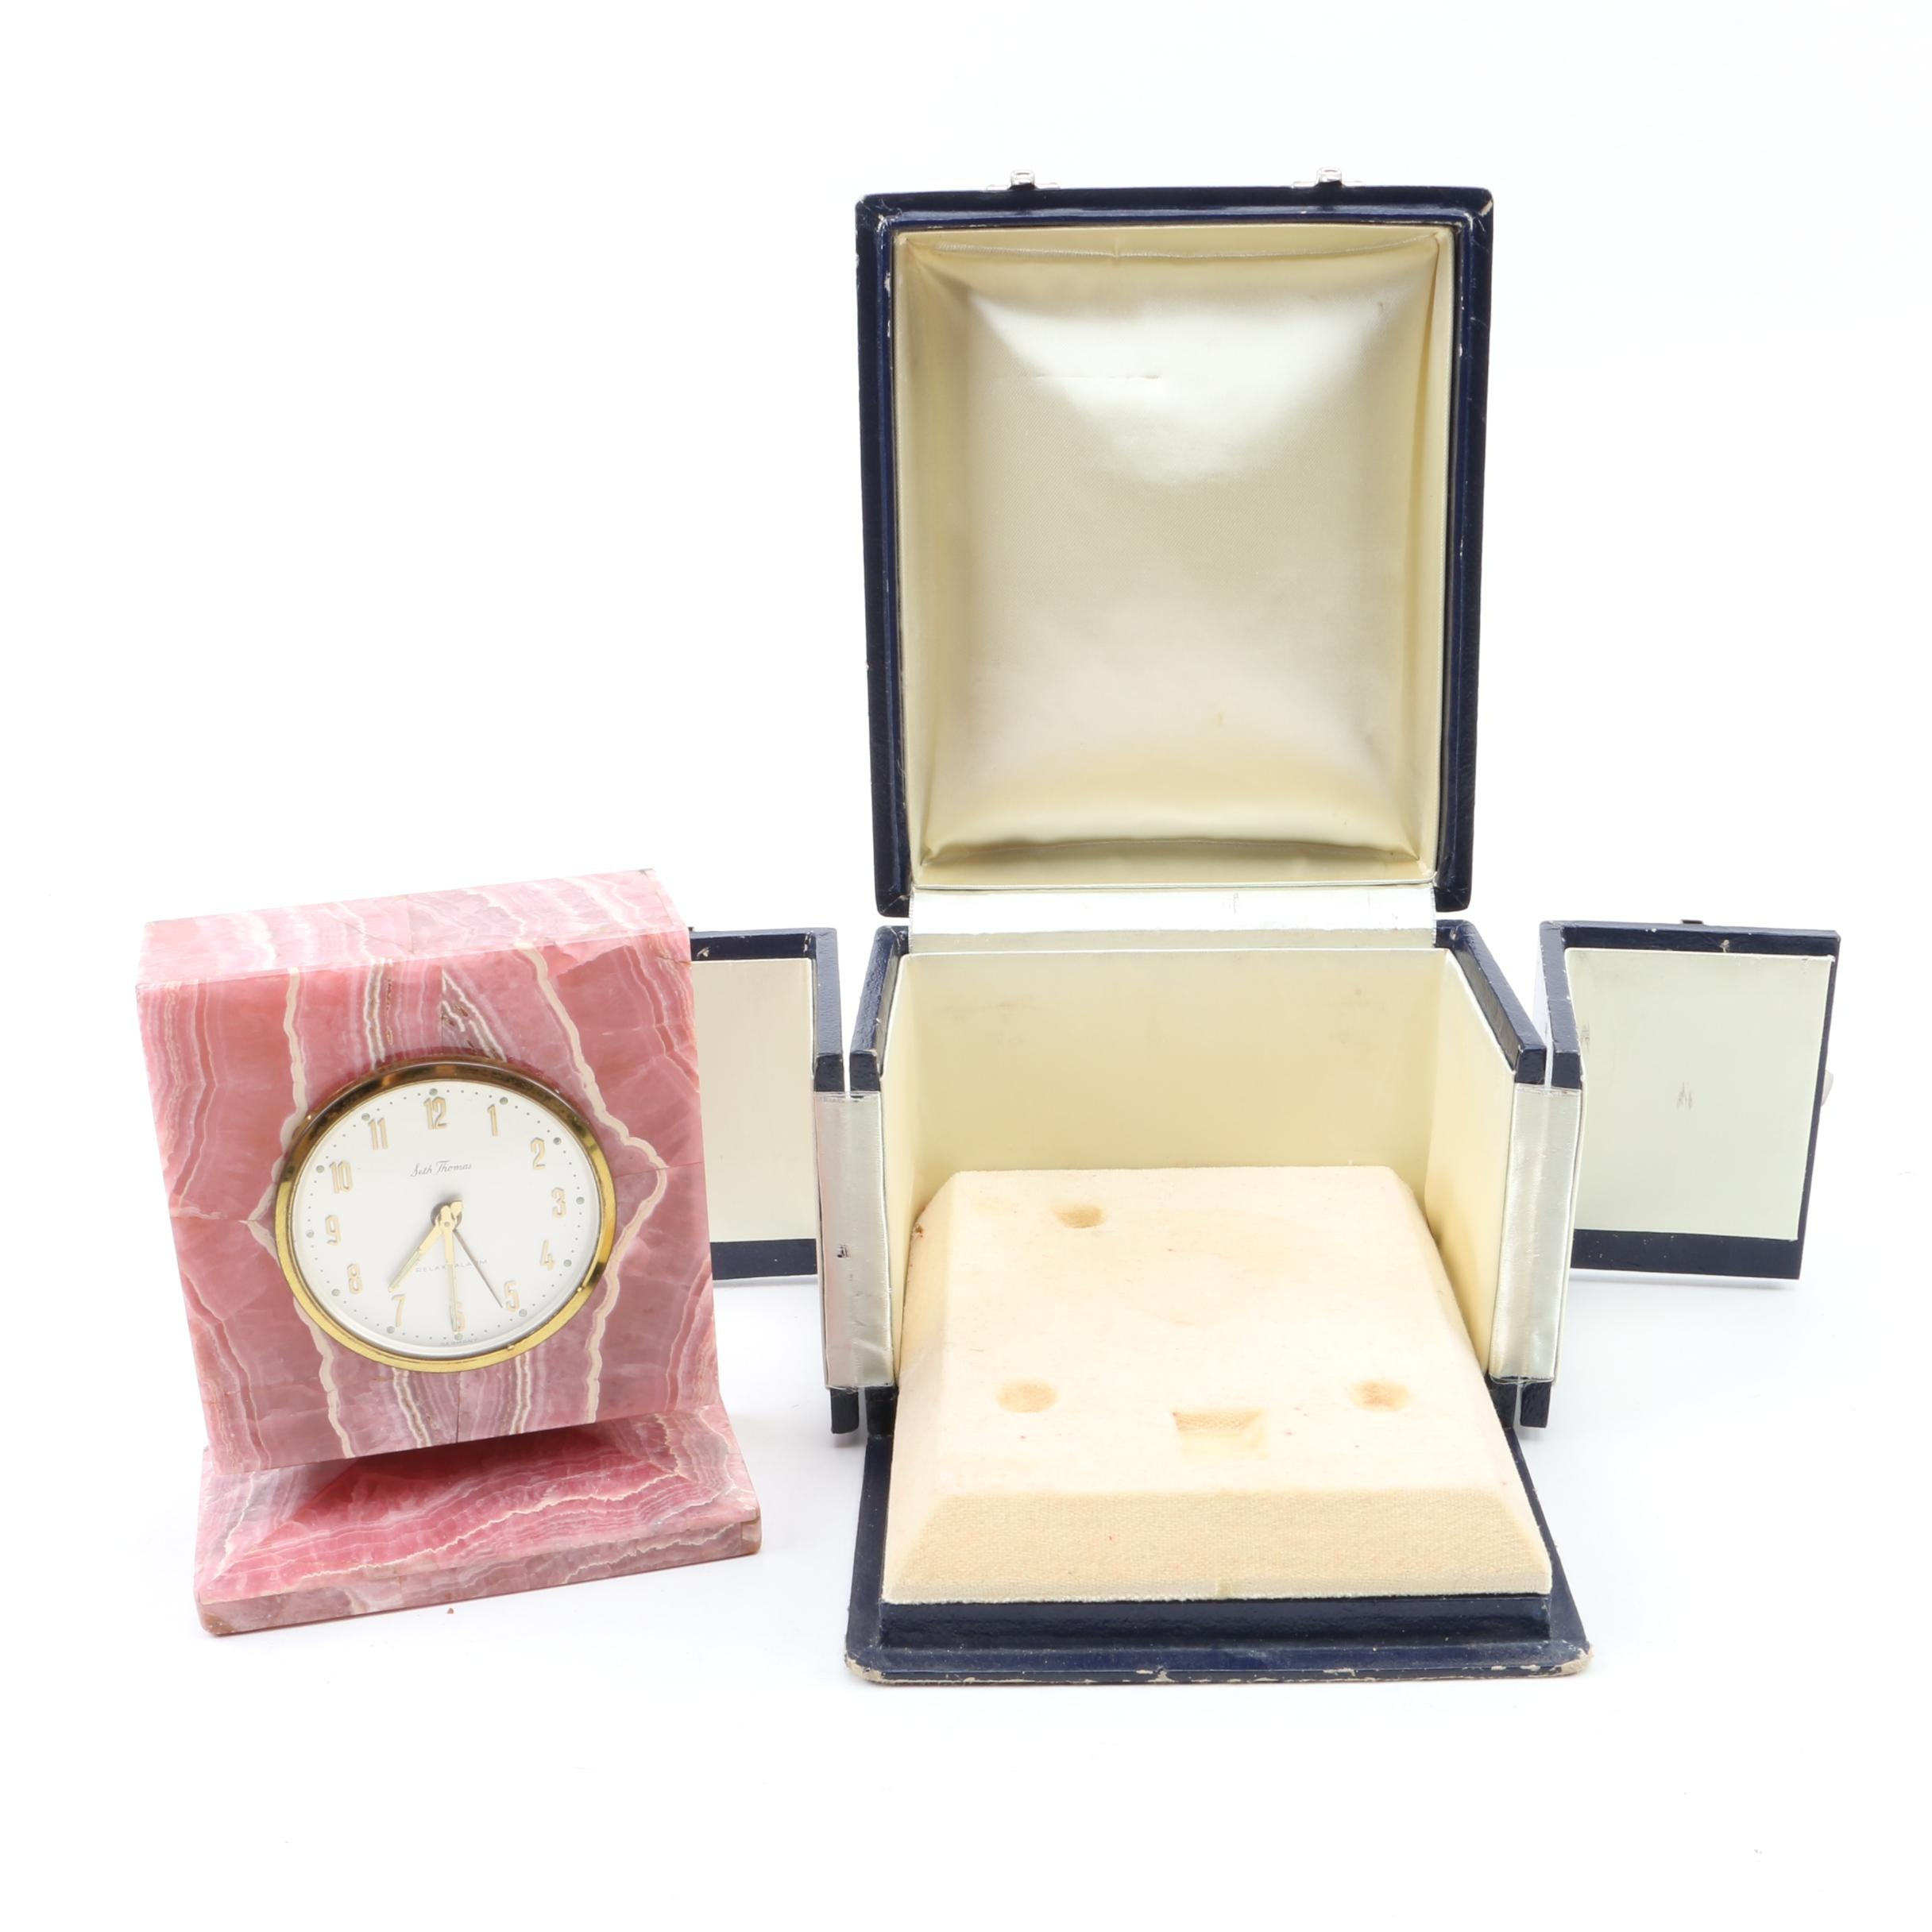 Seth Thomas Pink Stone Alarm Clock in A Wooden Box